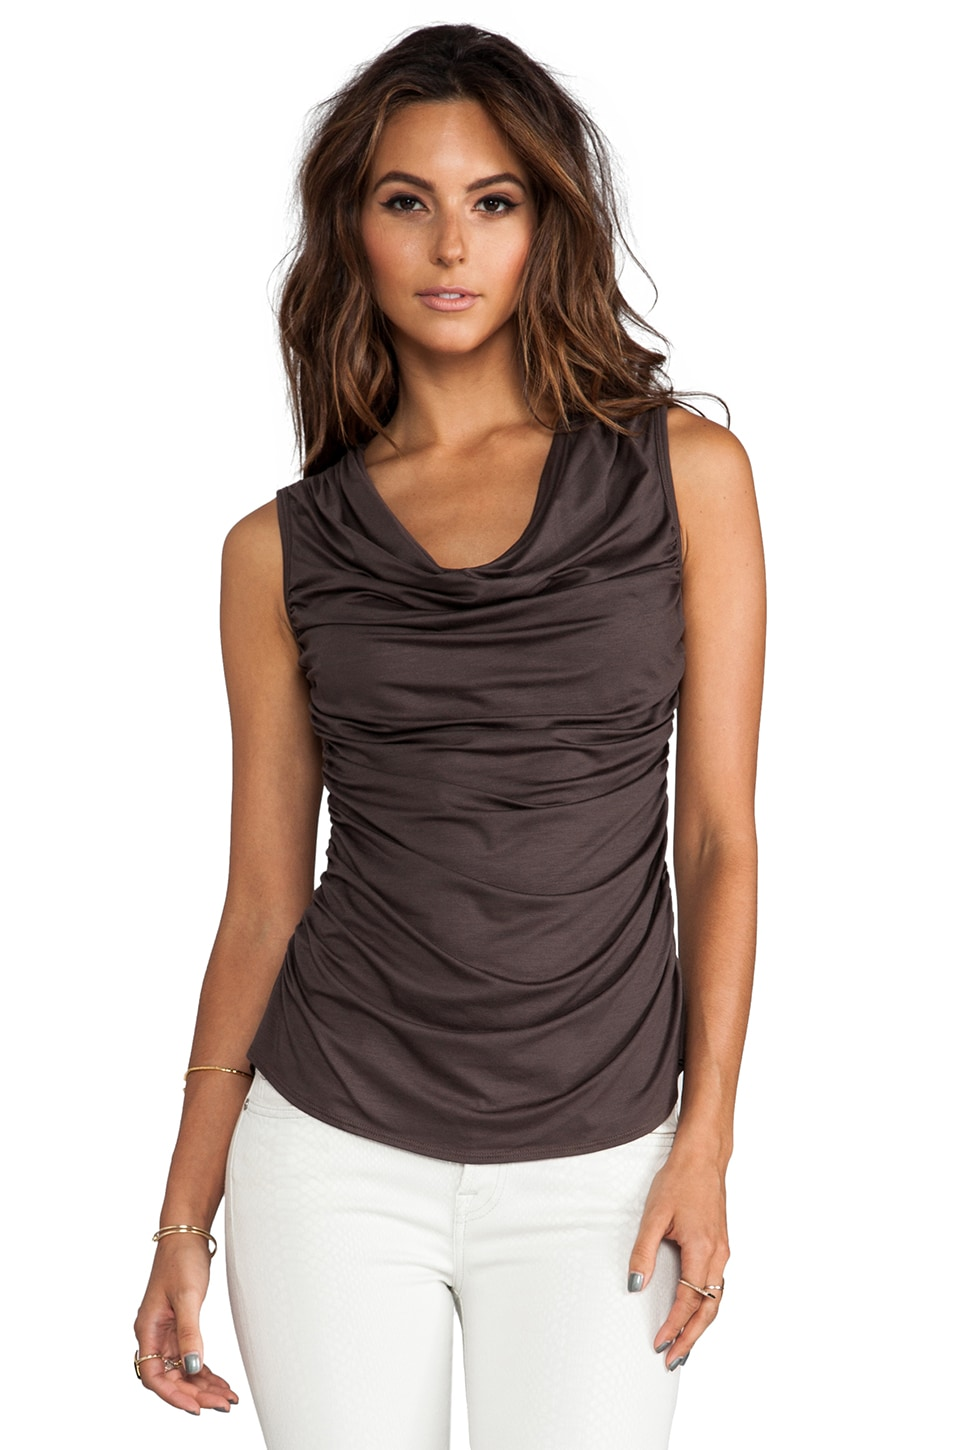 Trina Turk Must Have Jersey Kace Top in Rare Earth